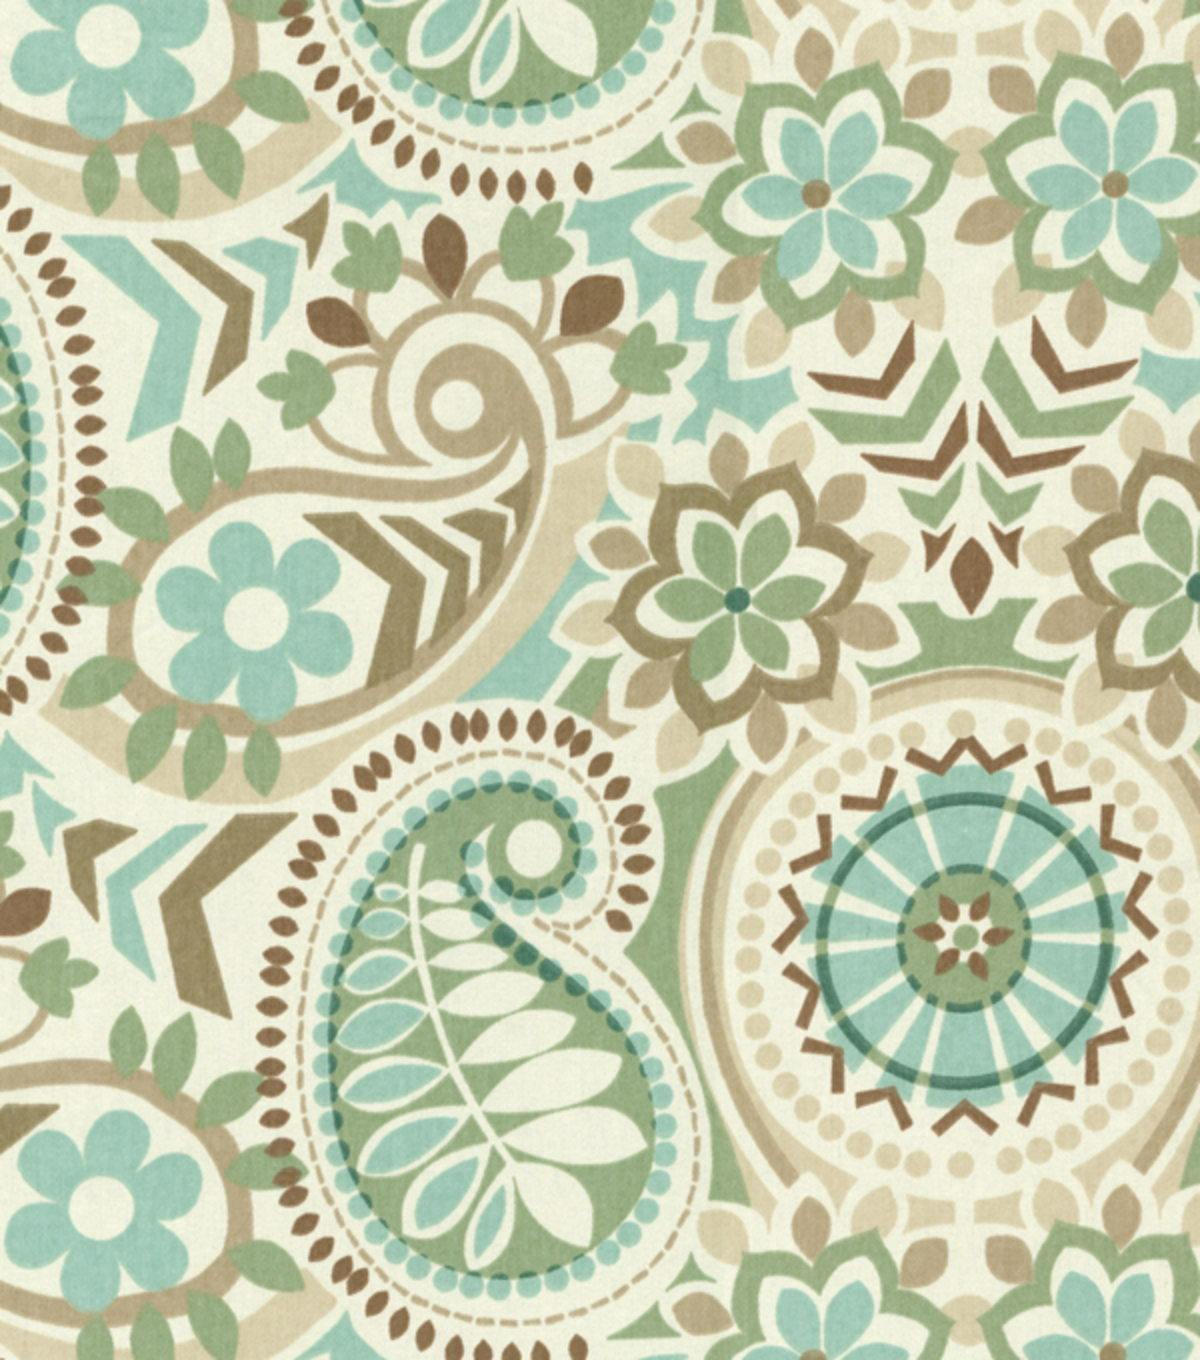 Home Decor Print Fabric- Waverly Paisley Prism Latte | JOANN